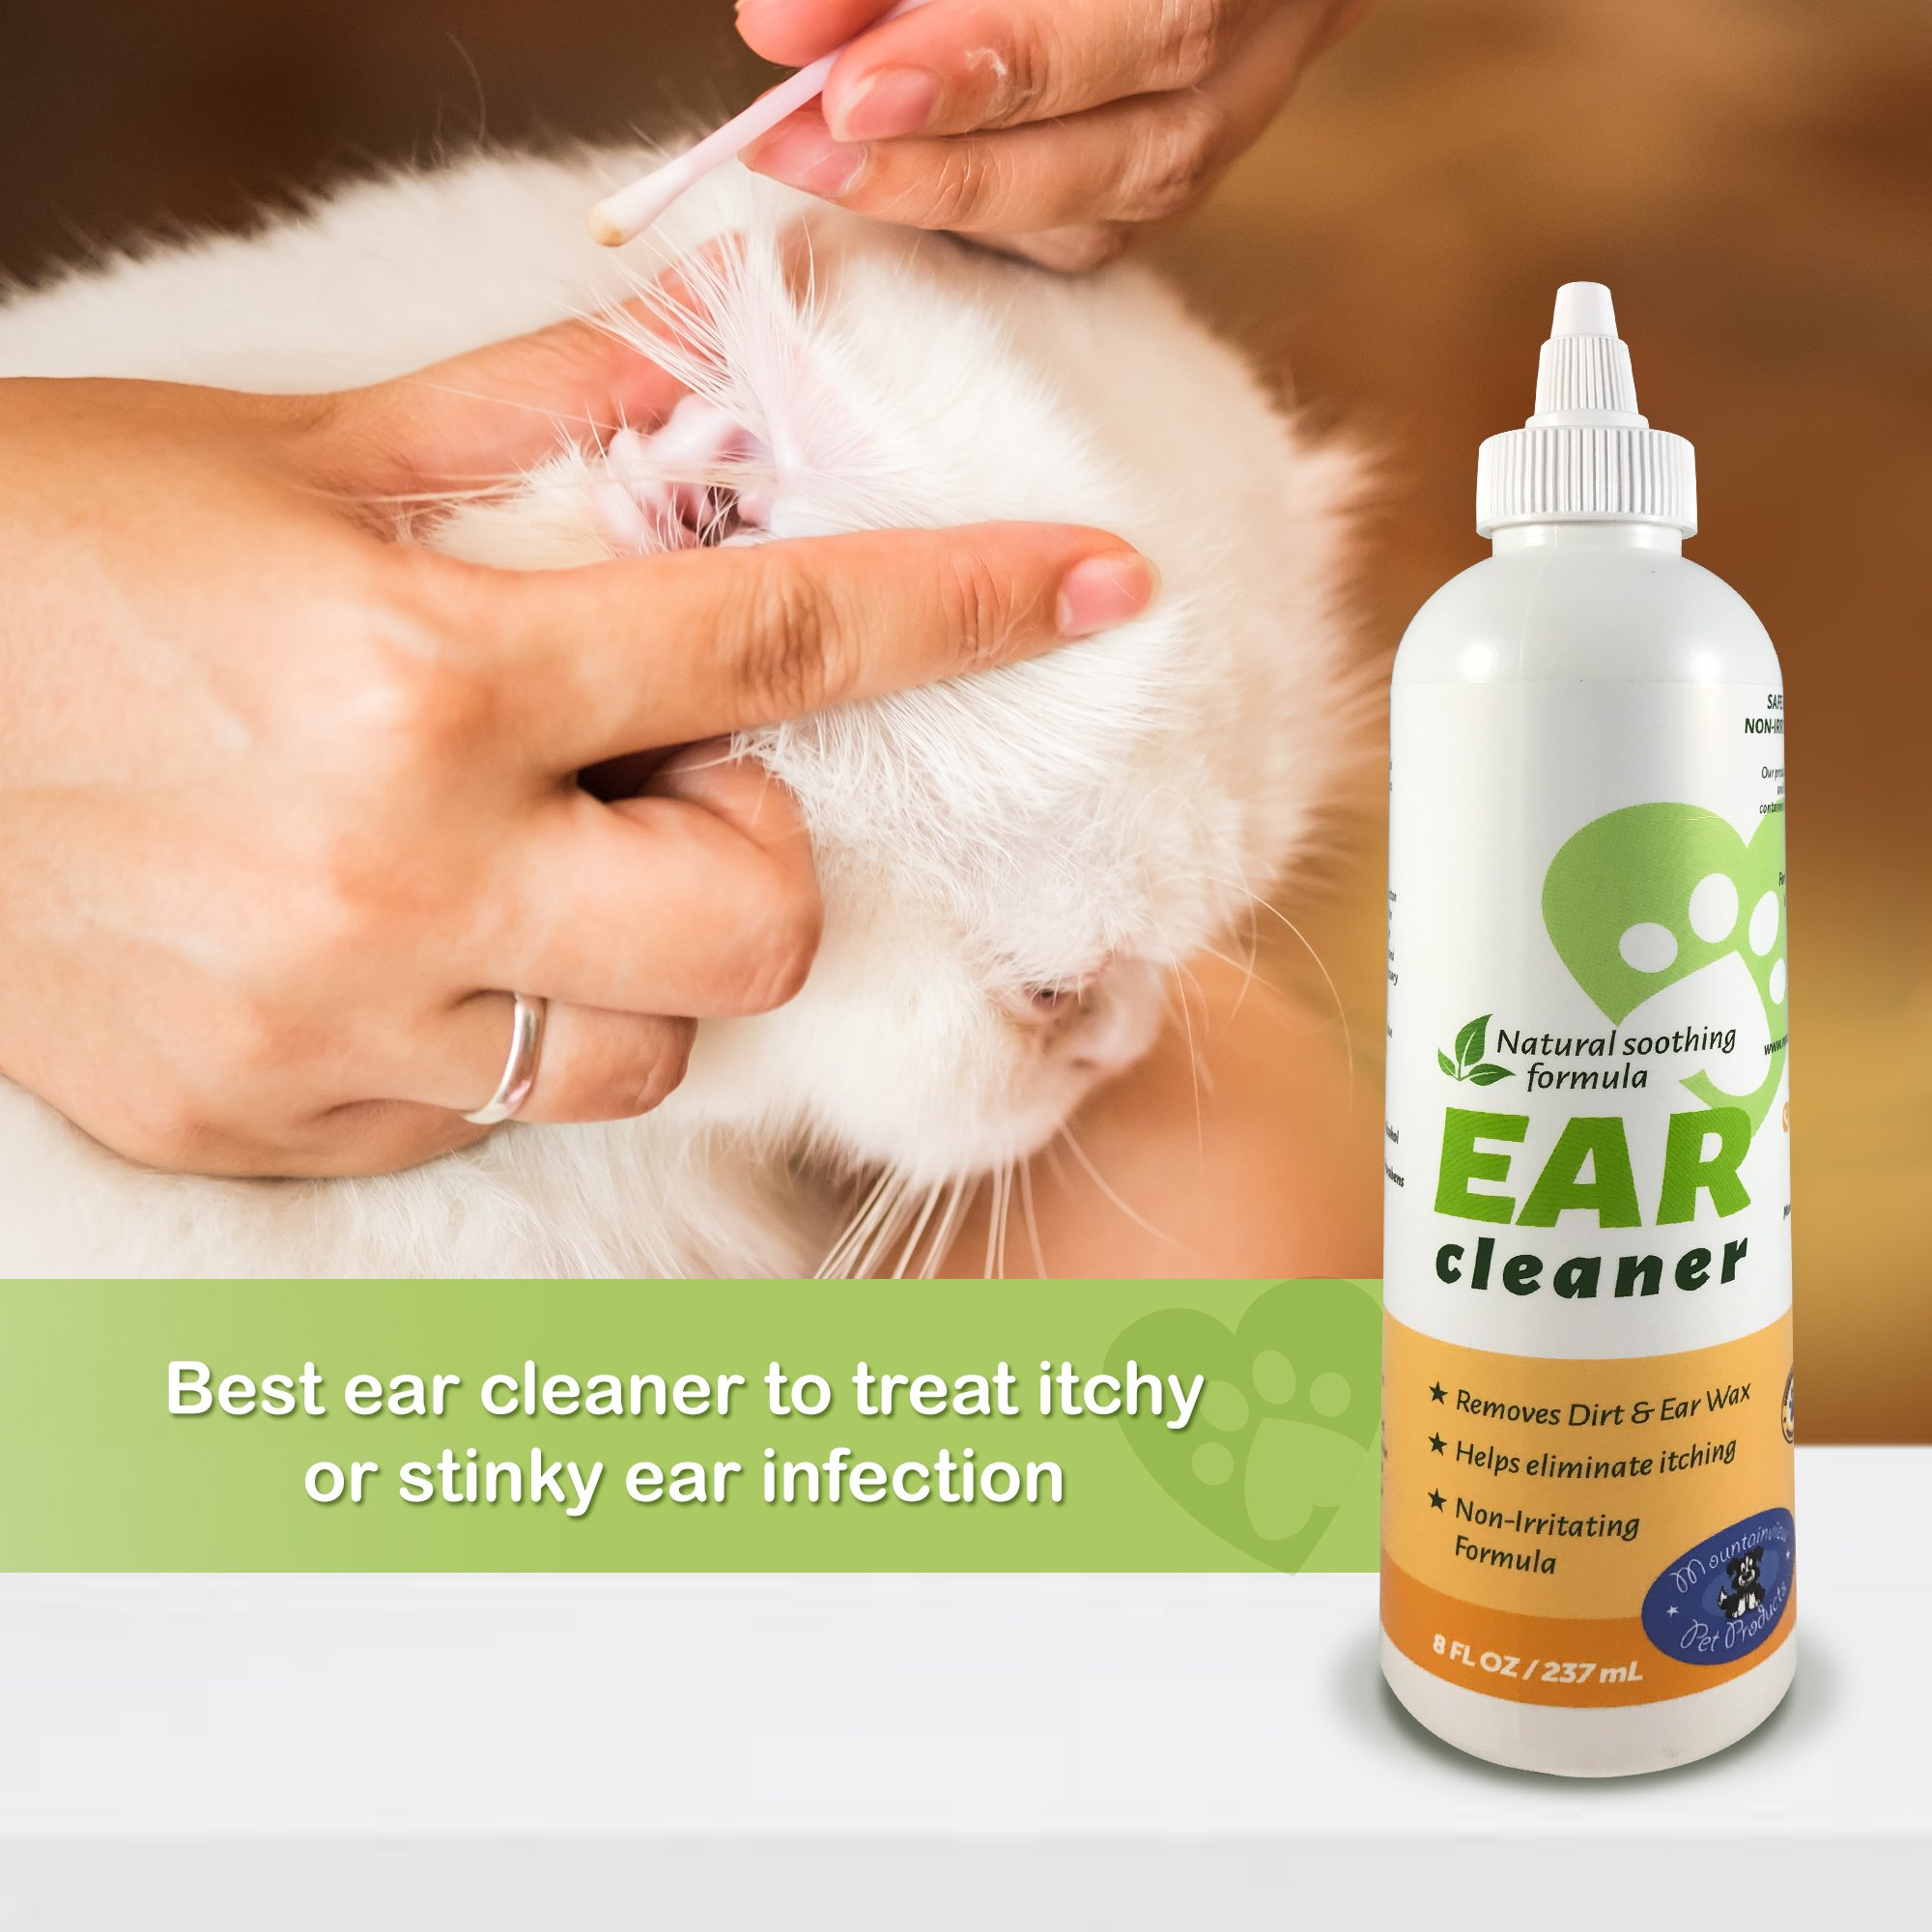 Mountainview Pet Products All Natural Ear Cleaner for Dogs or Cats with Easy Application Nozzle, Gently Removes Wax, Dirt and Odors by Mountainview Pet Products (Image #6)